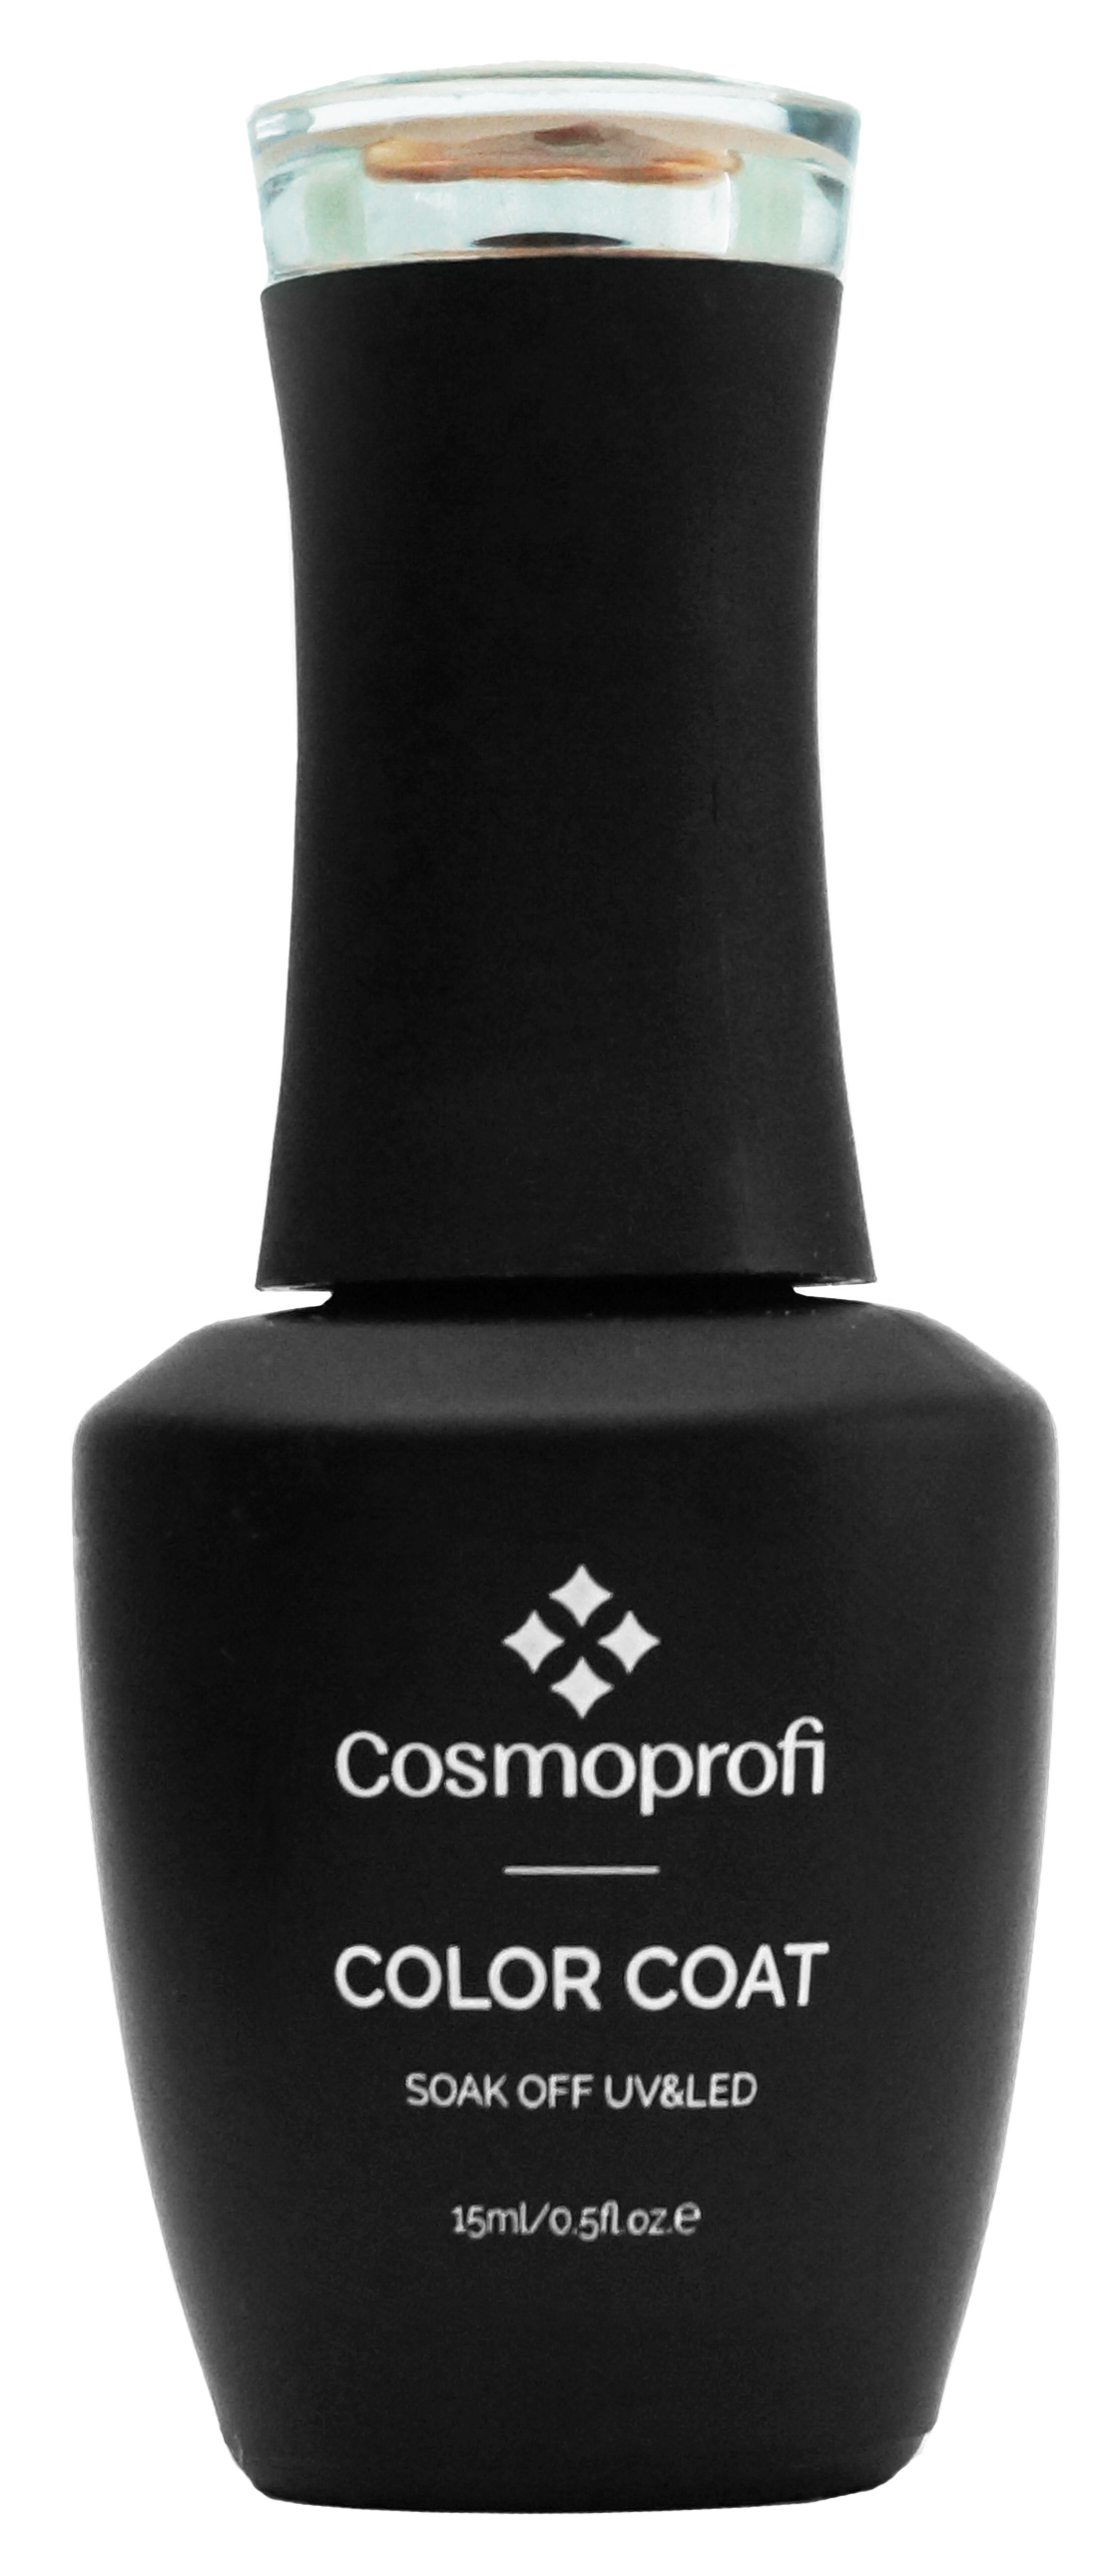 Гель-лак Cosmoprofi, Color coat № 102, 15 мл